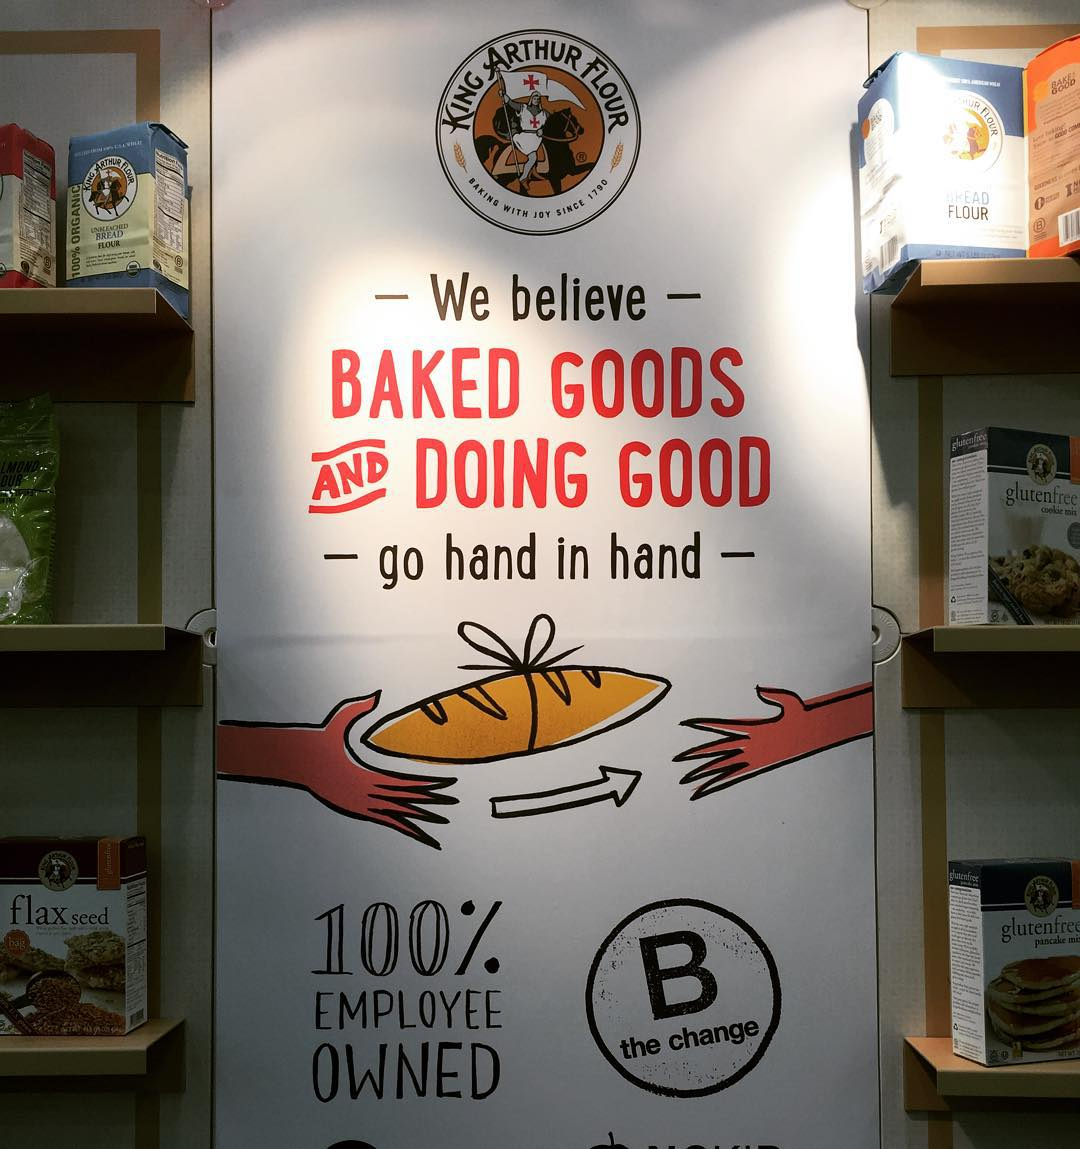 Looking good @kingarthurflour at Expo East! #BtheChange ... Happy 225th Birthday!